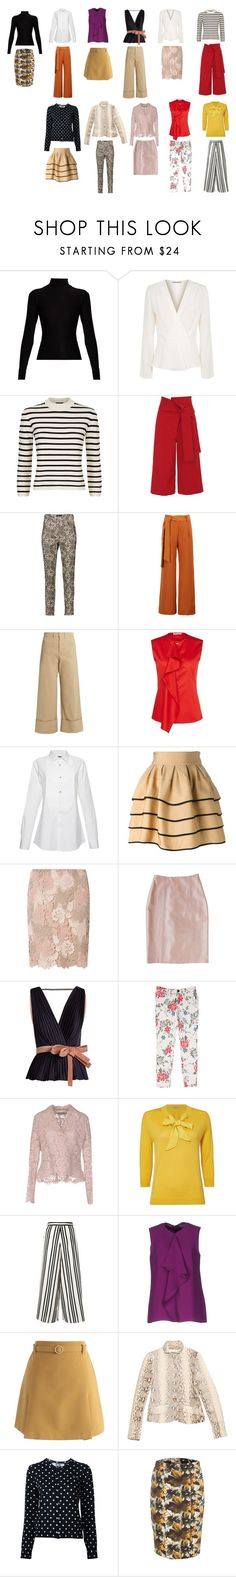 """20 piece"" by marchied on Polyvore featuring Acne Studios, Elizabeth and James, Theory, TIBI, Isabel Marant, WithChic, Sea, New York, ATM by Anthony Thomas Melillo, FAUSTO PUGLISI and Dorothy Perkins"